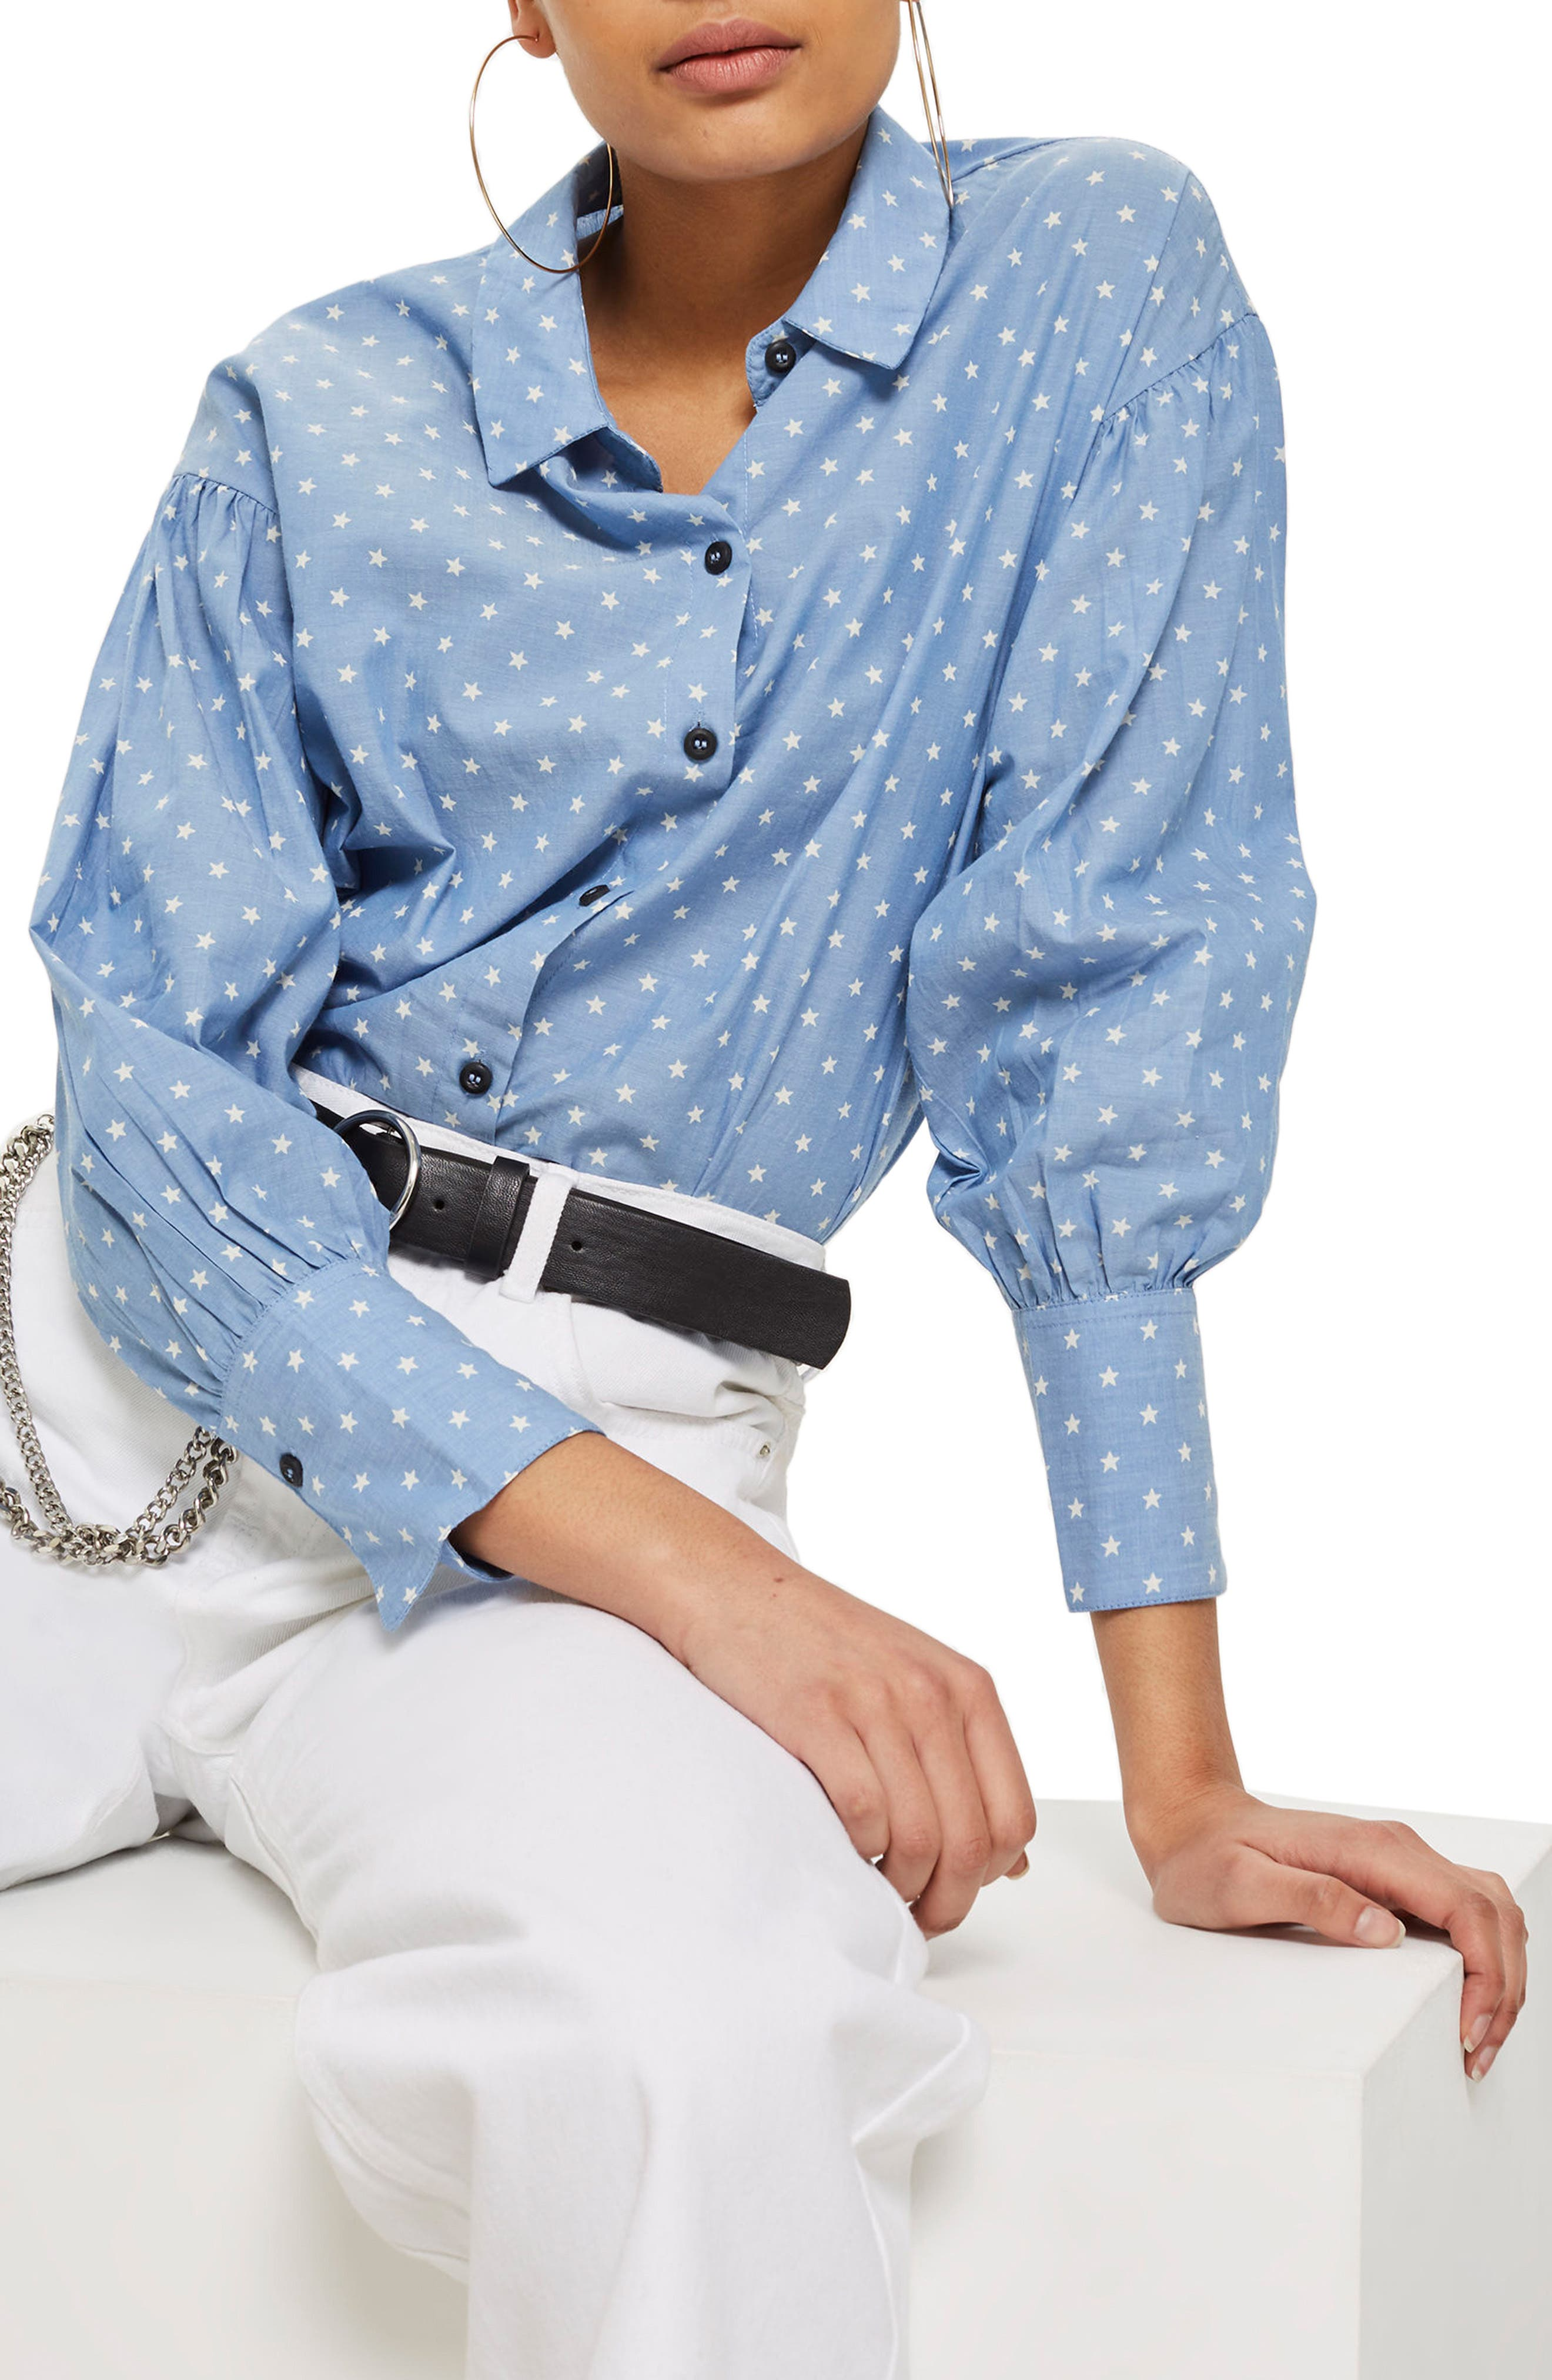 Star Print Chambray Shirt, Main, color, 400